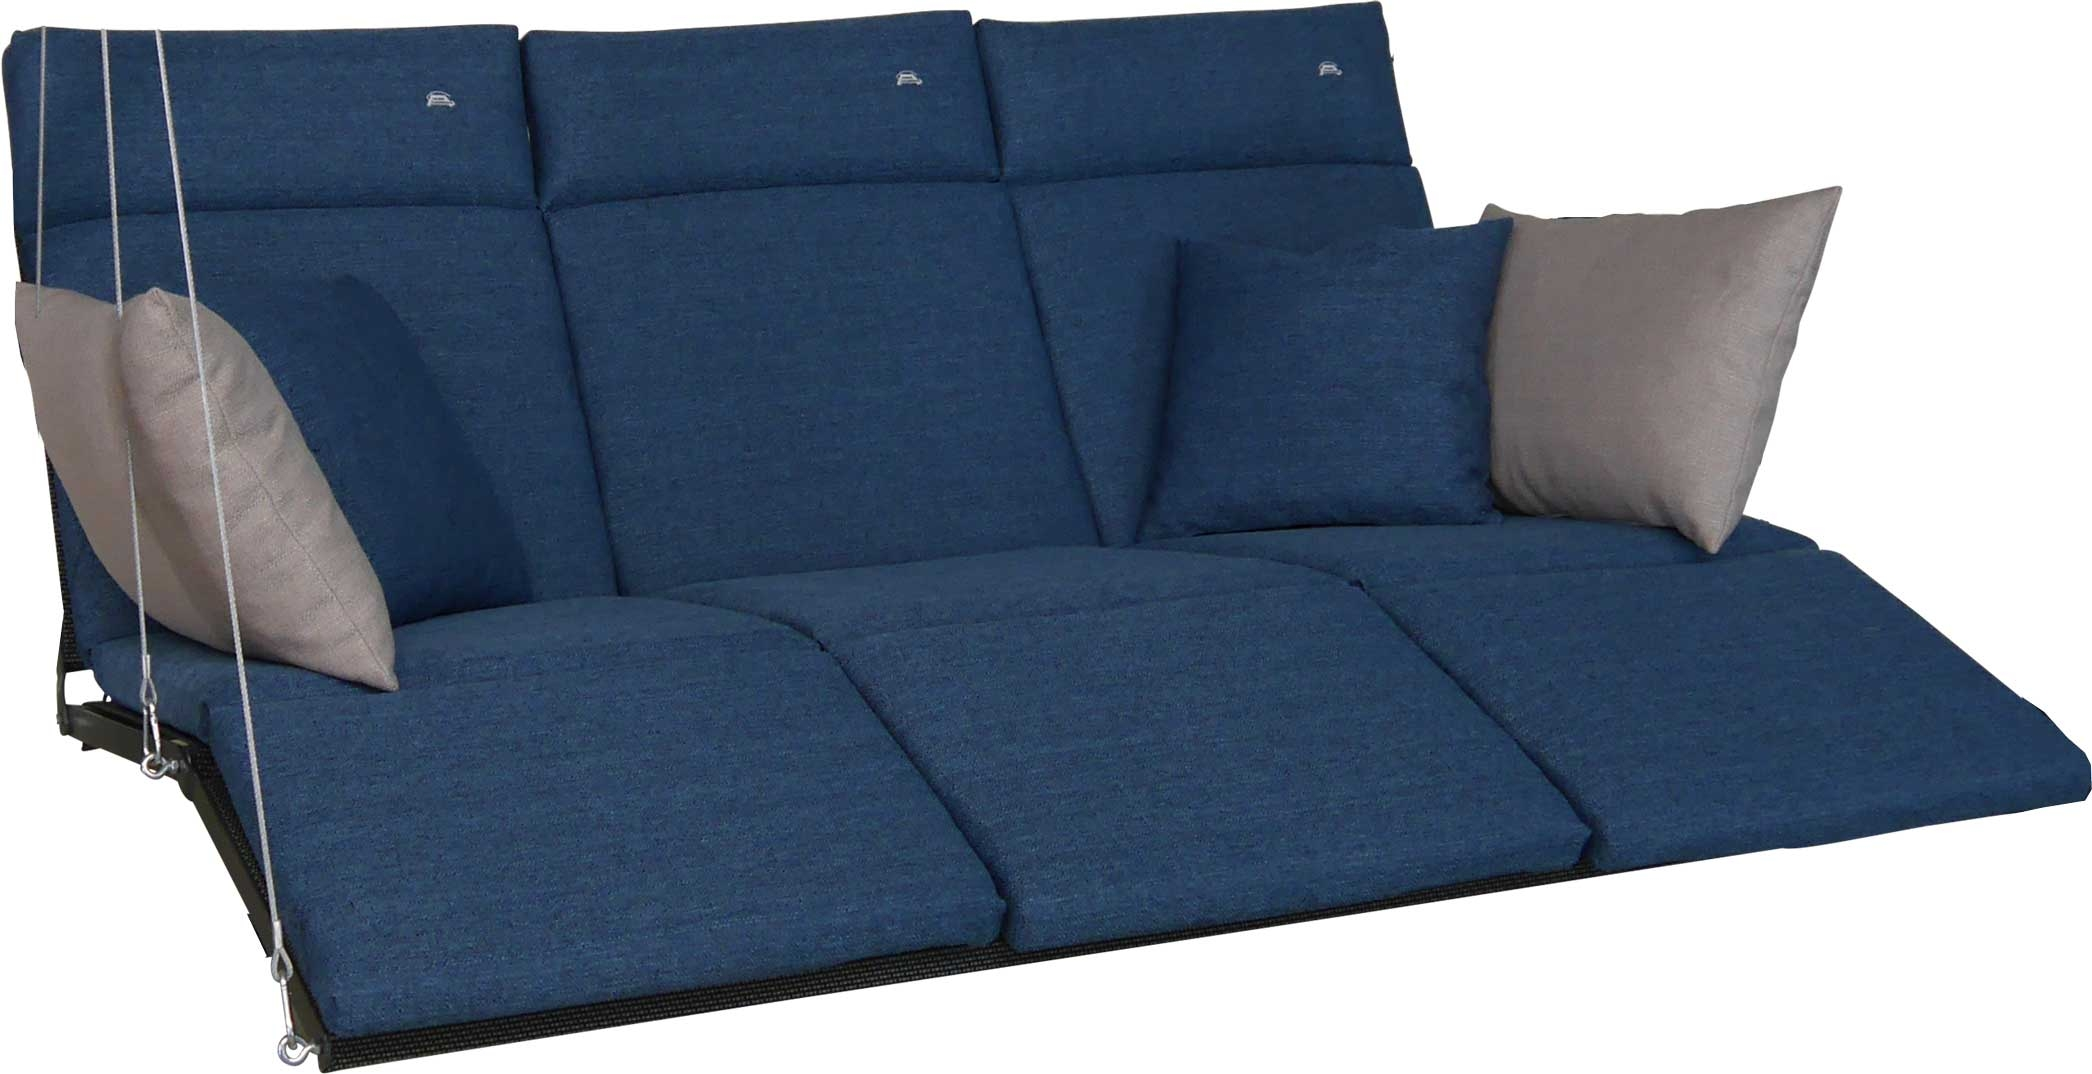 Angerer Hollywoodschaukel Auflage Relax Smart denim